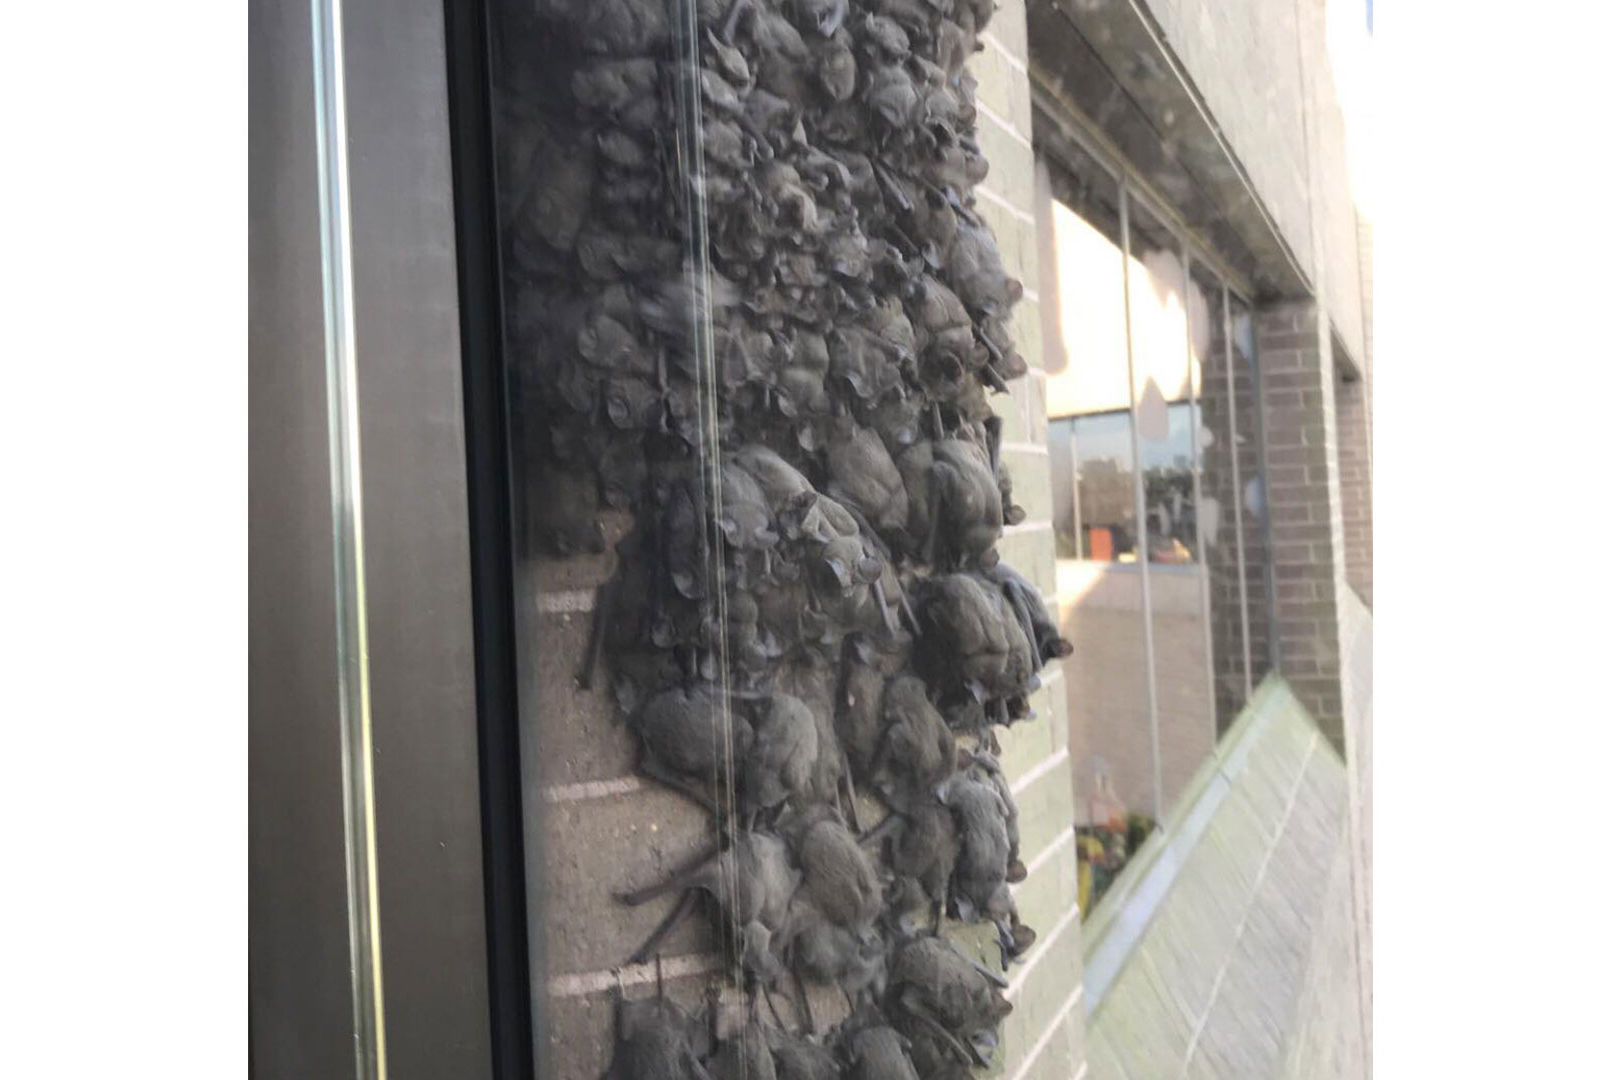 Nobody Knows Why Hundreds of Bats Keep Visiting This Houston Office Building